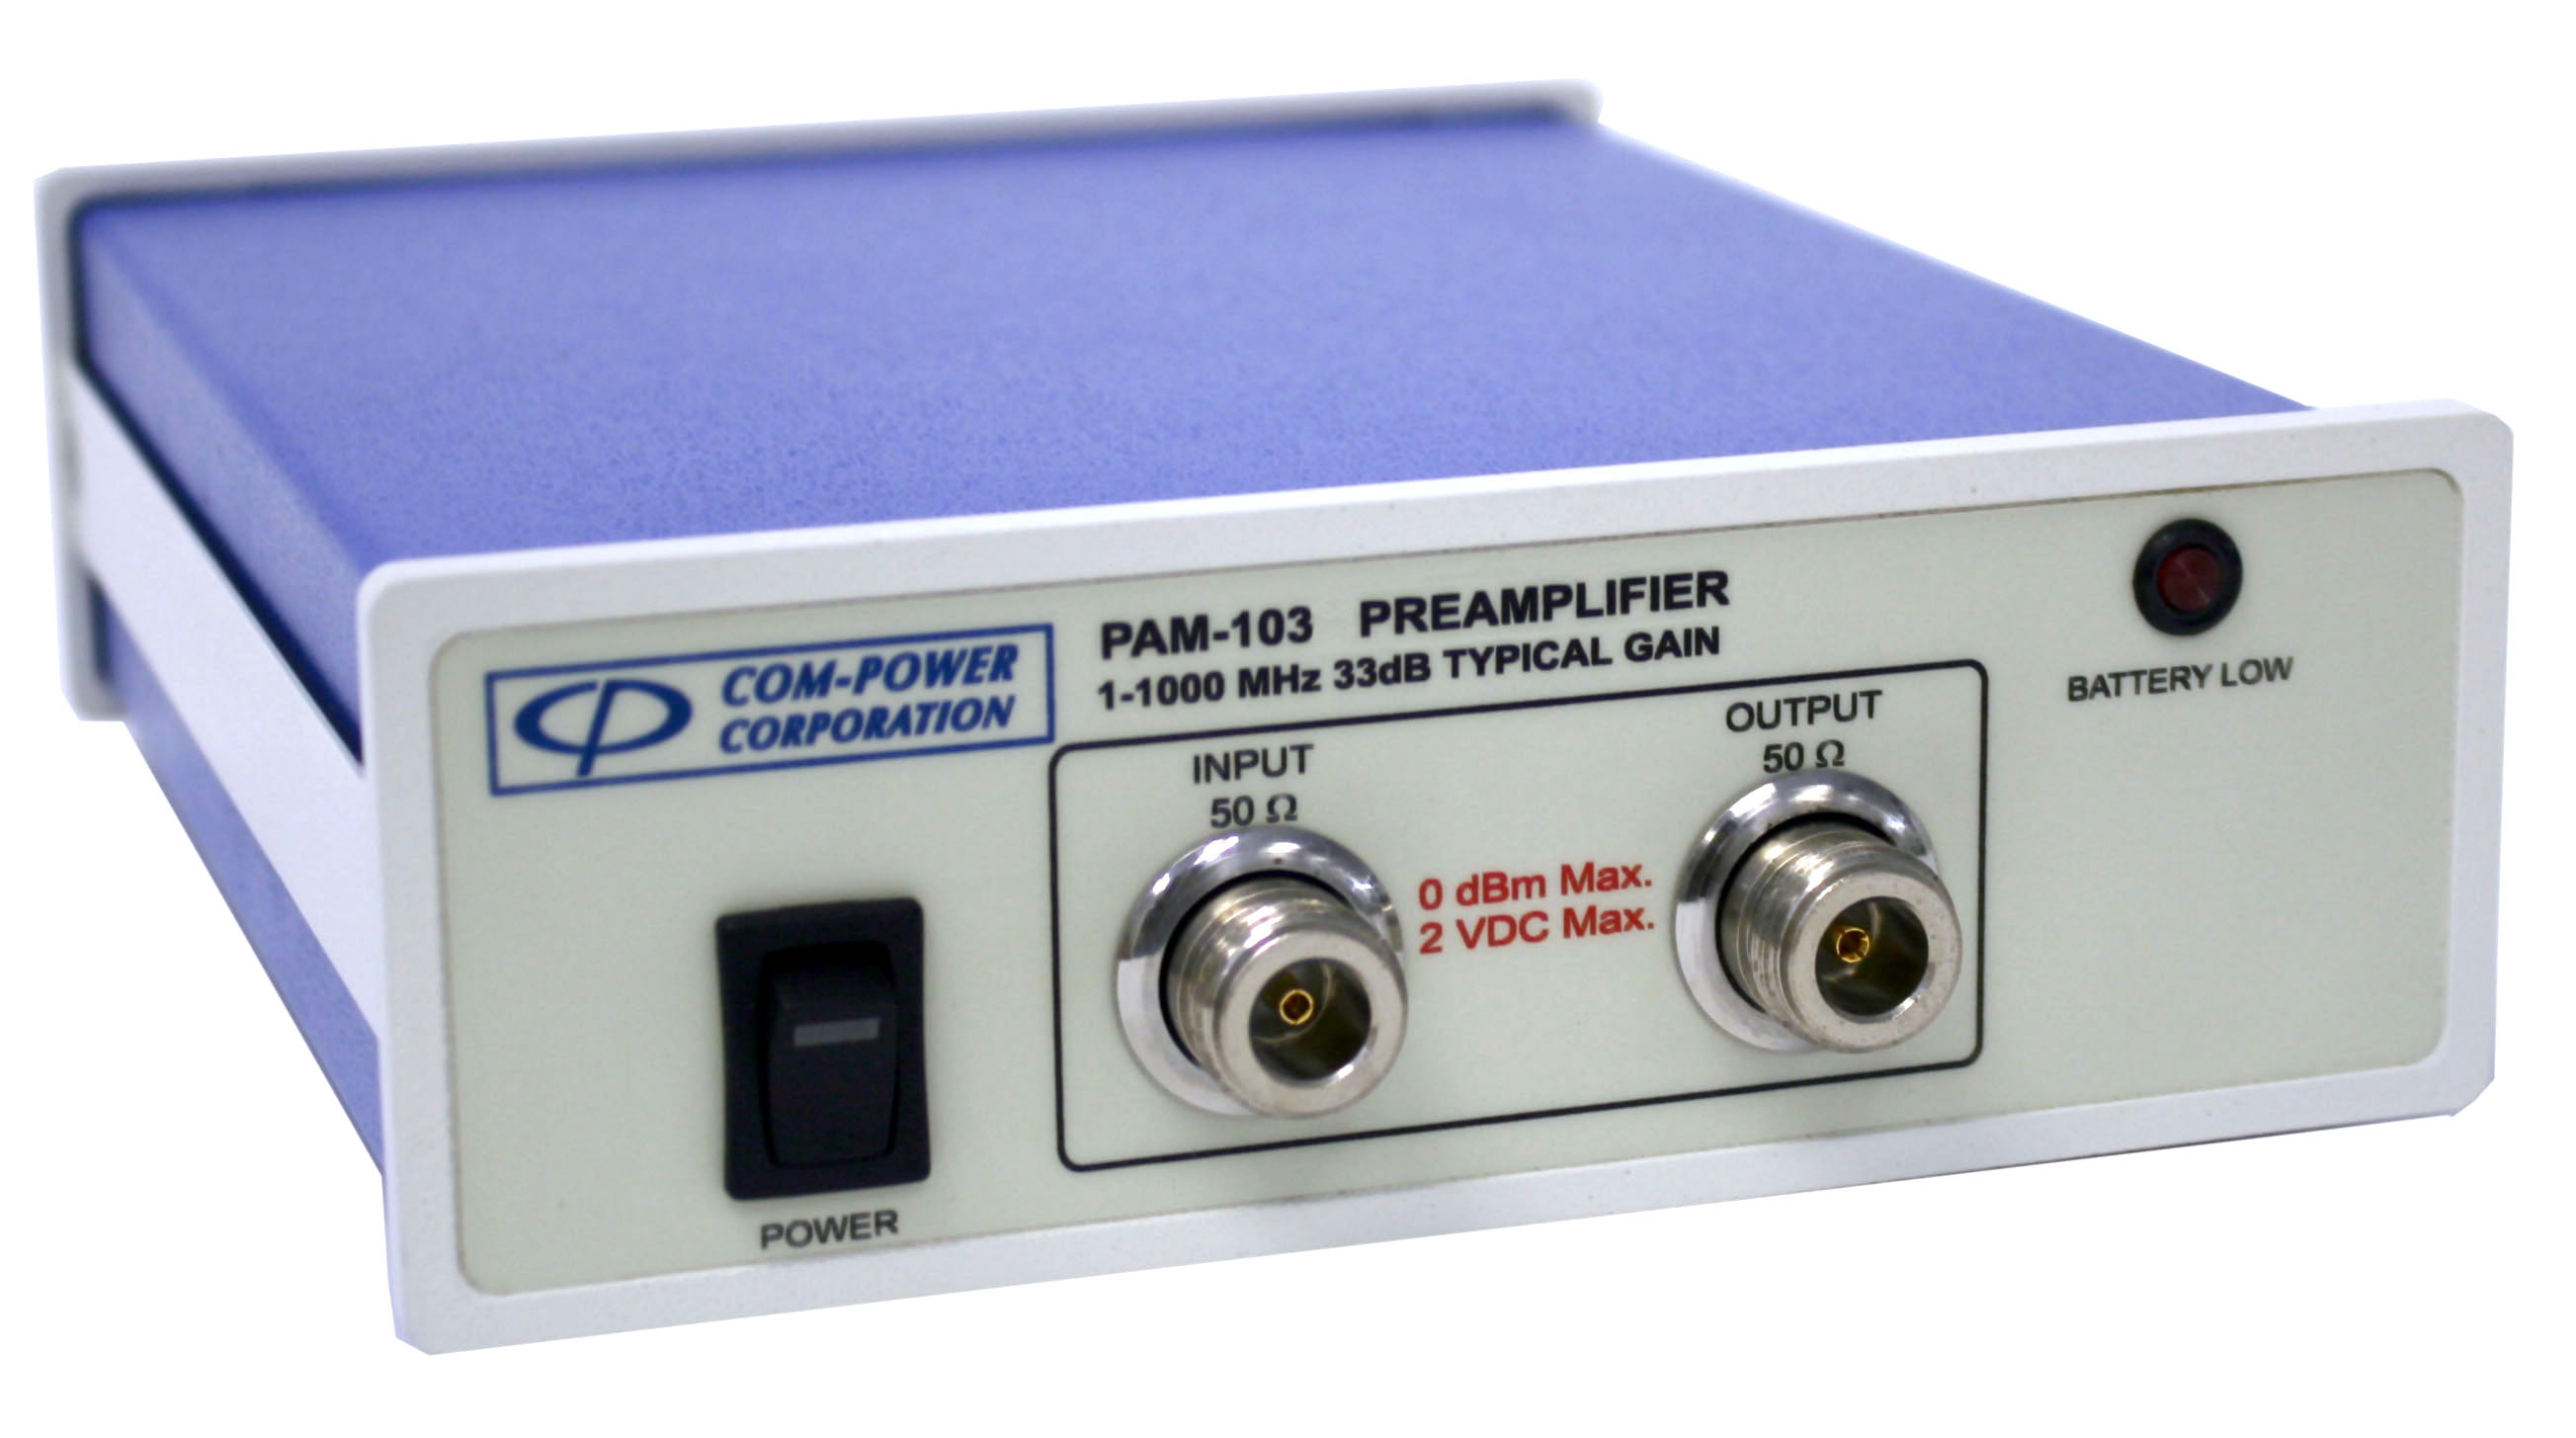 PAM-103 - Com-Power Preamplifiers